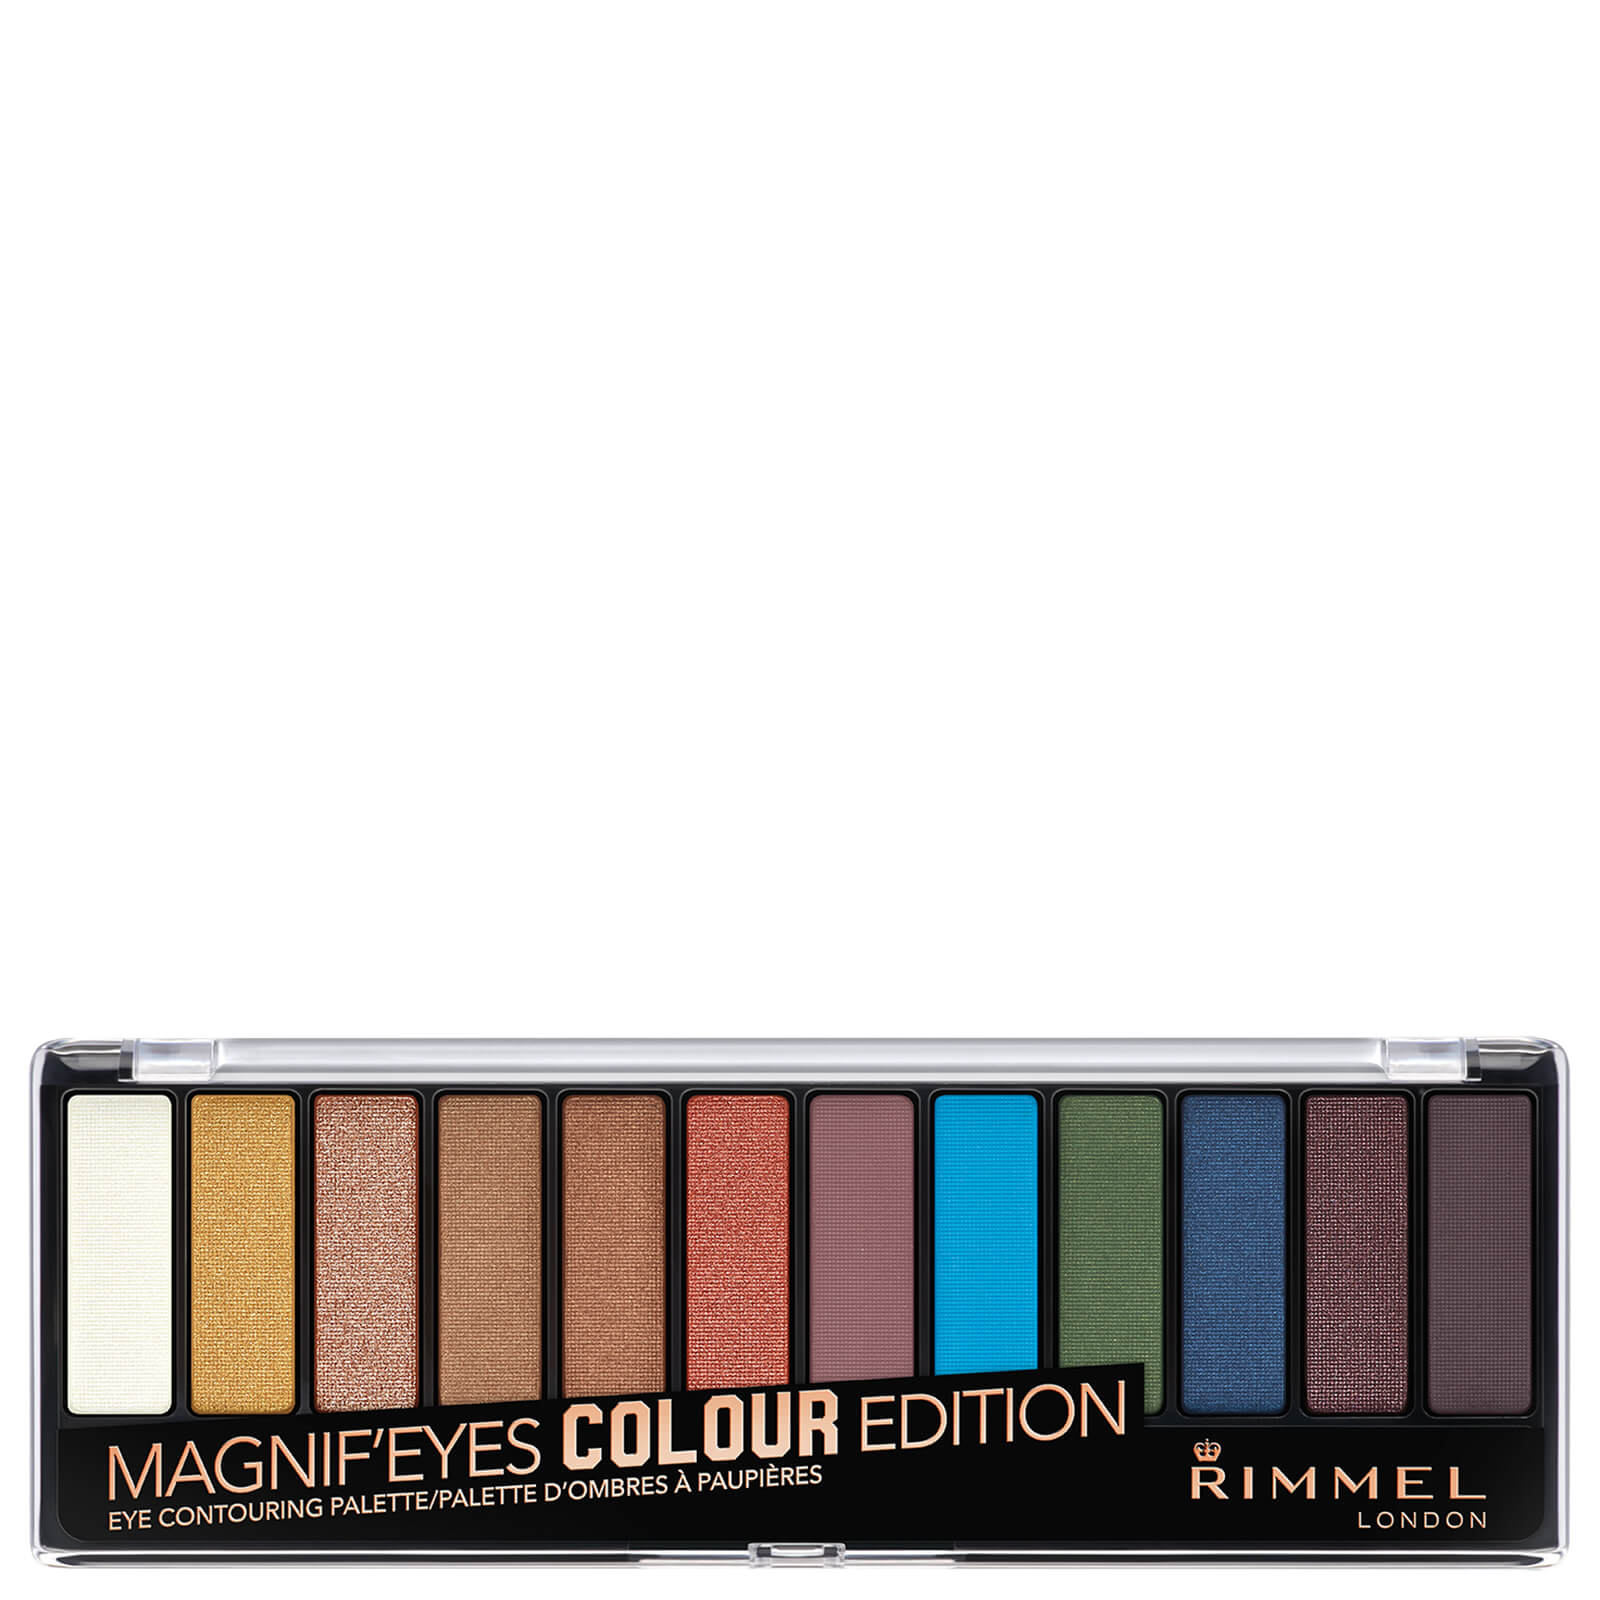 Rimmel 12 Pan Eyeshadow Palette - Bold Edition 14g